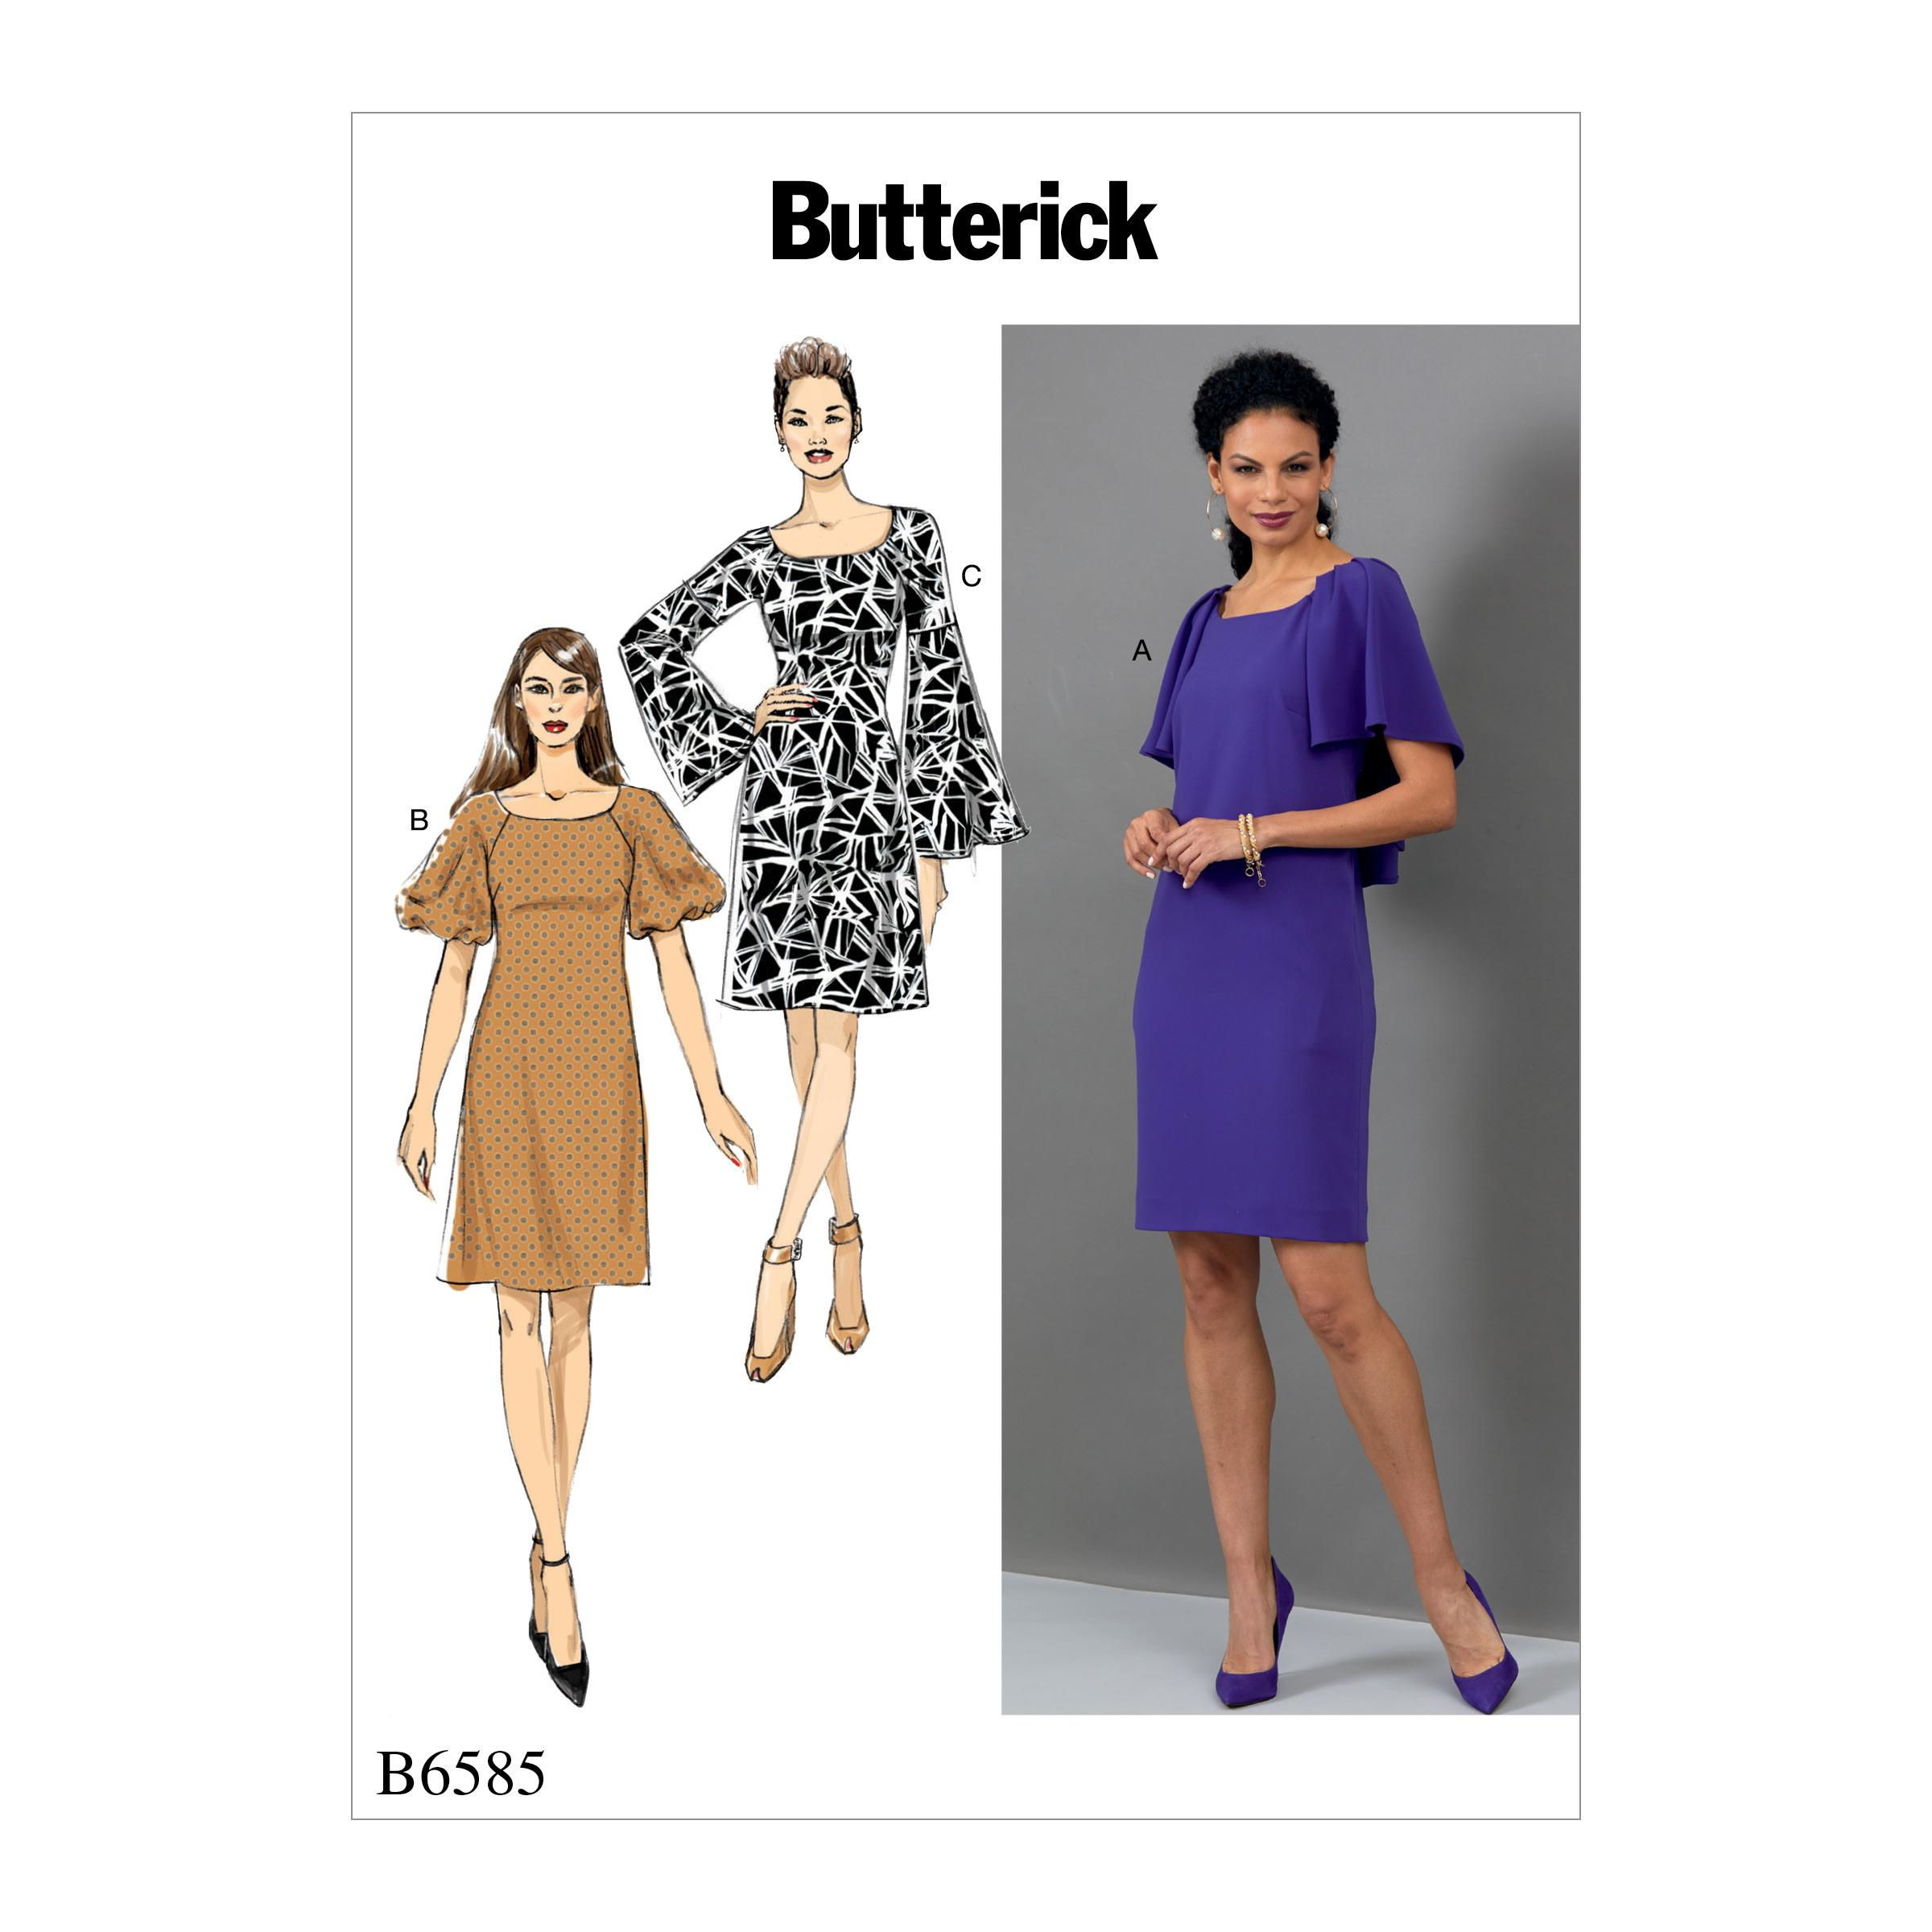 Butterick B6585 Misses' Dress